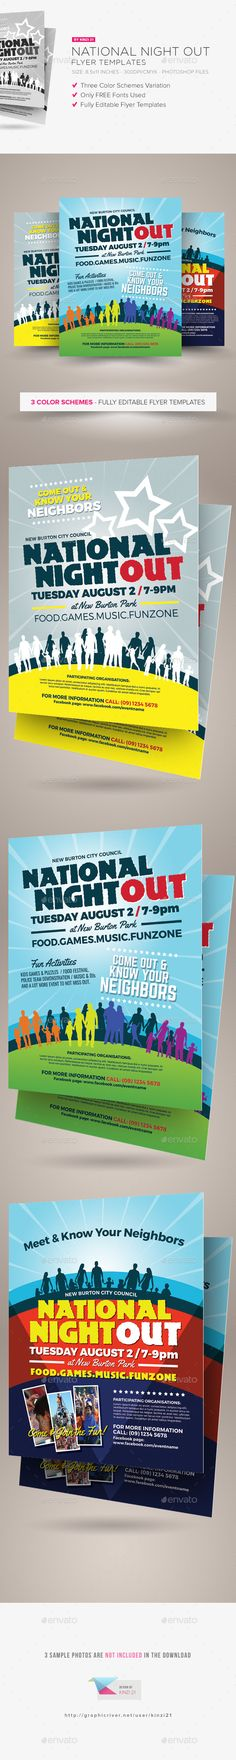 National Night Out Flyer Template PSD. Download here: http://graphicriver.net/item/national-night-out-flyer-templates/15879402?ref=ksioks